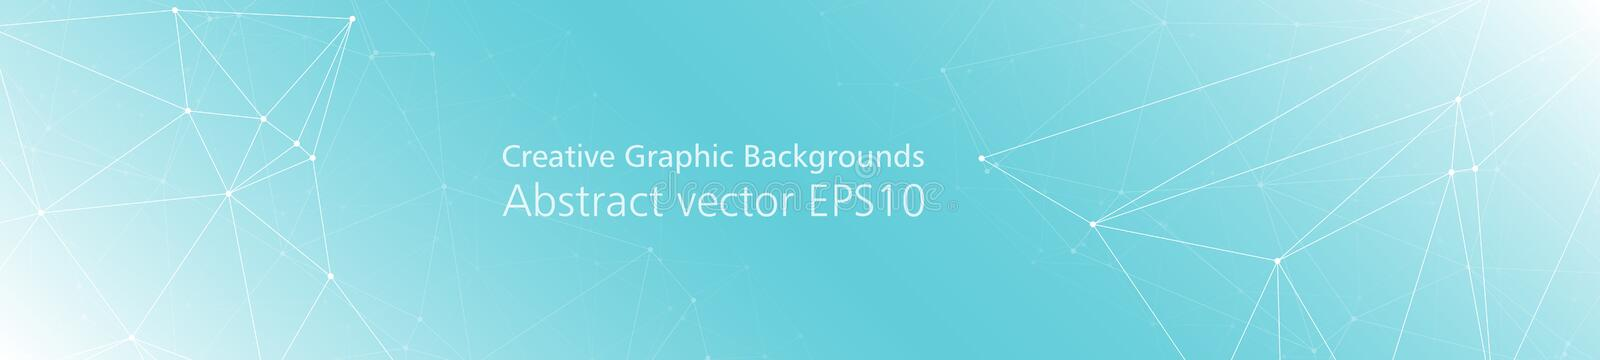 Digital wireframe creative graphic backgrounds, connected lines vector pattern royalty free illustration